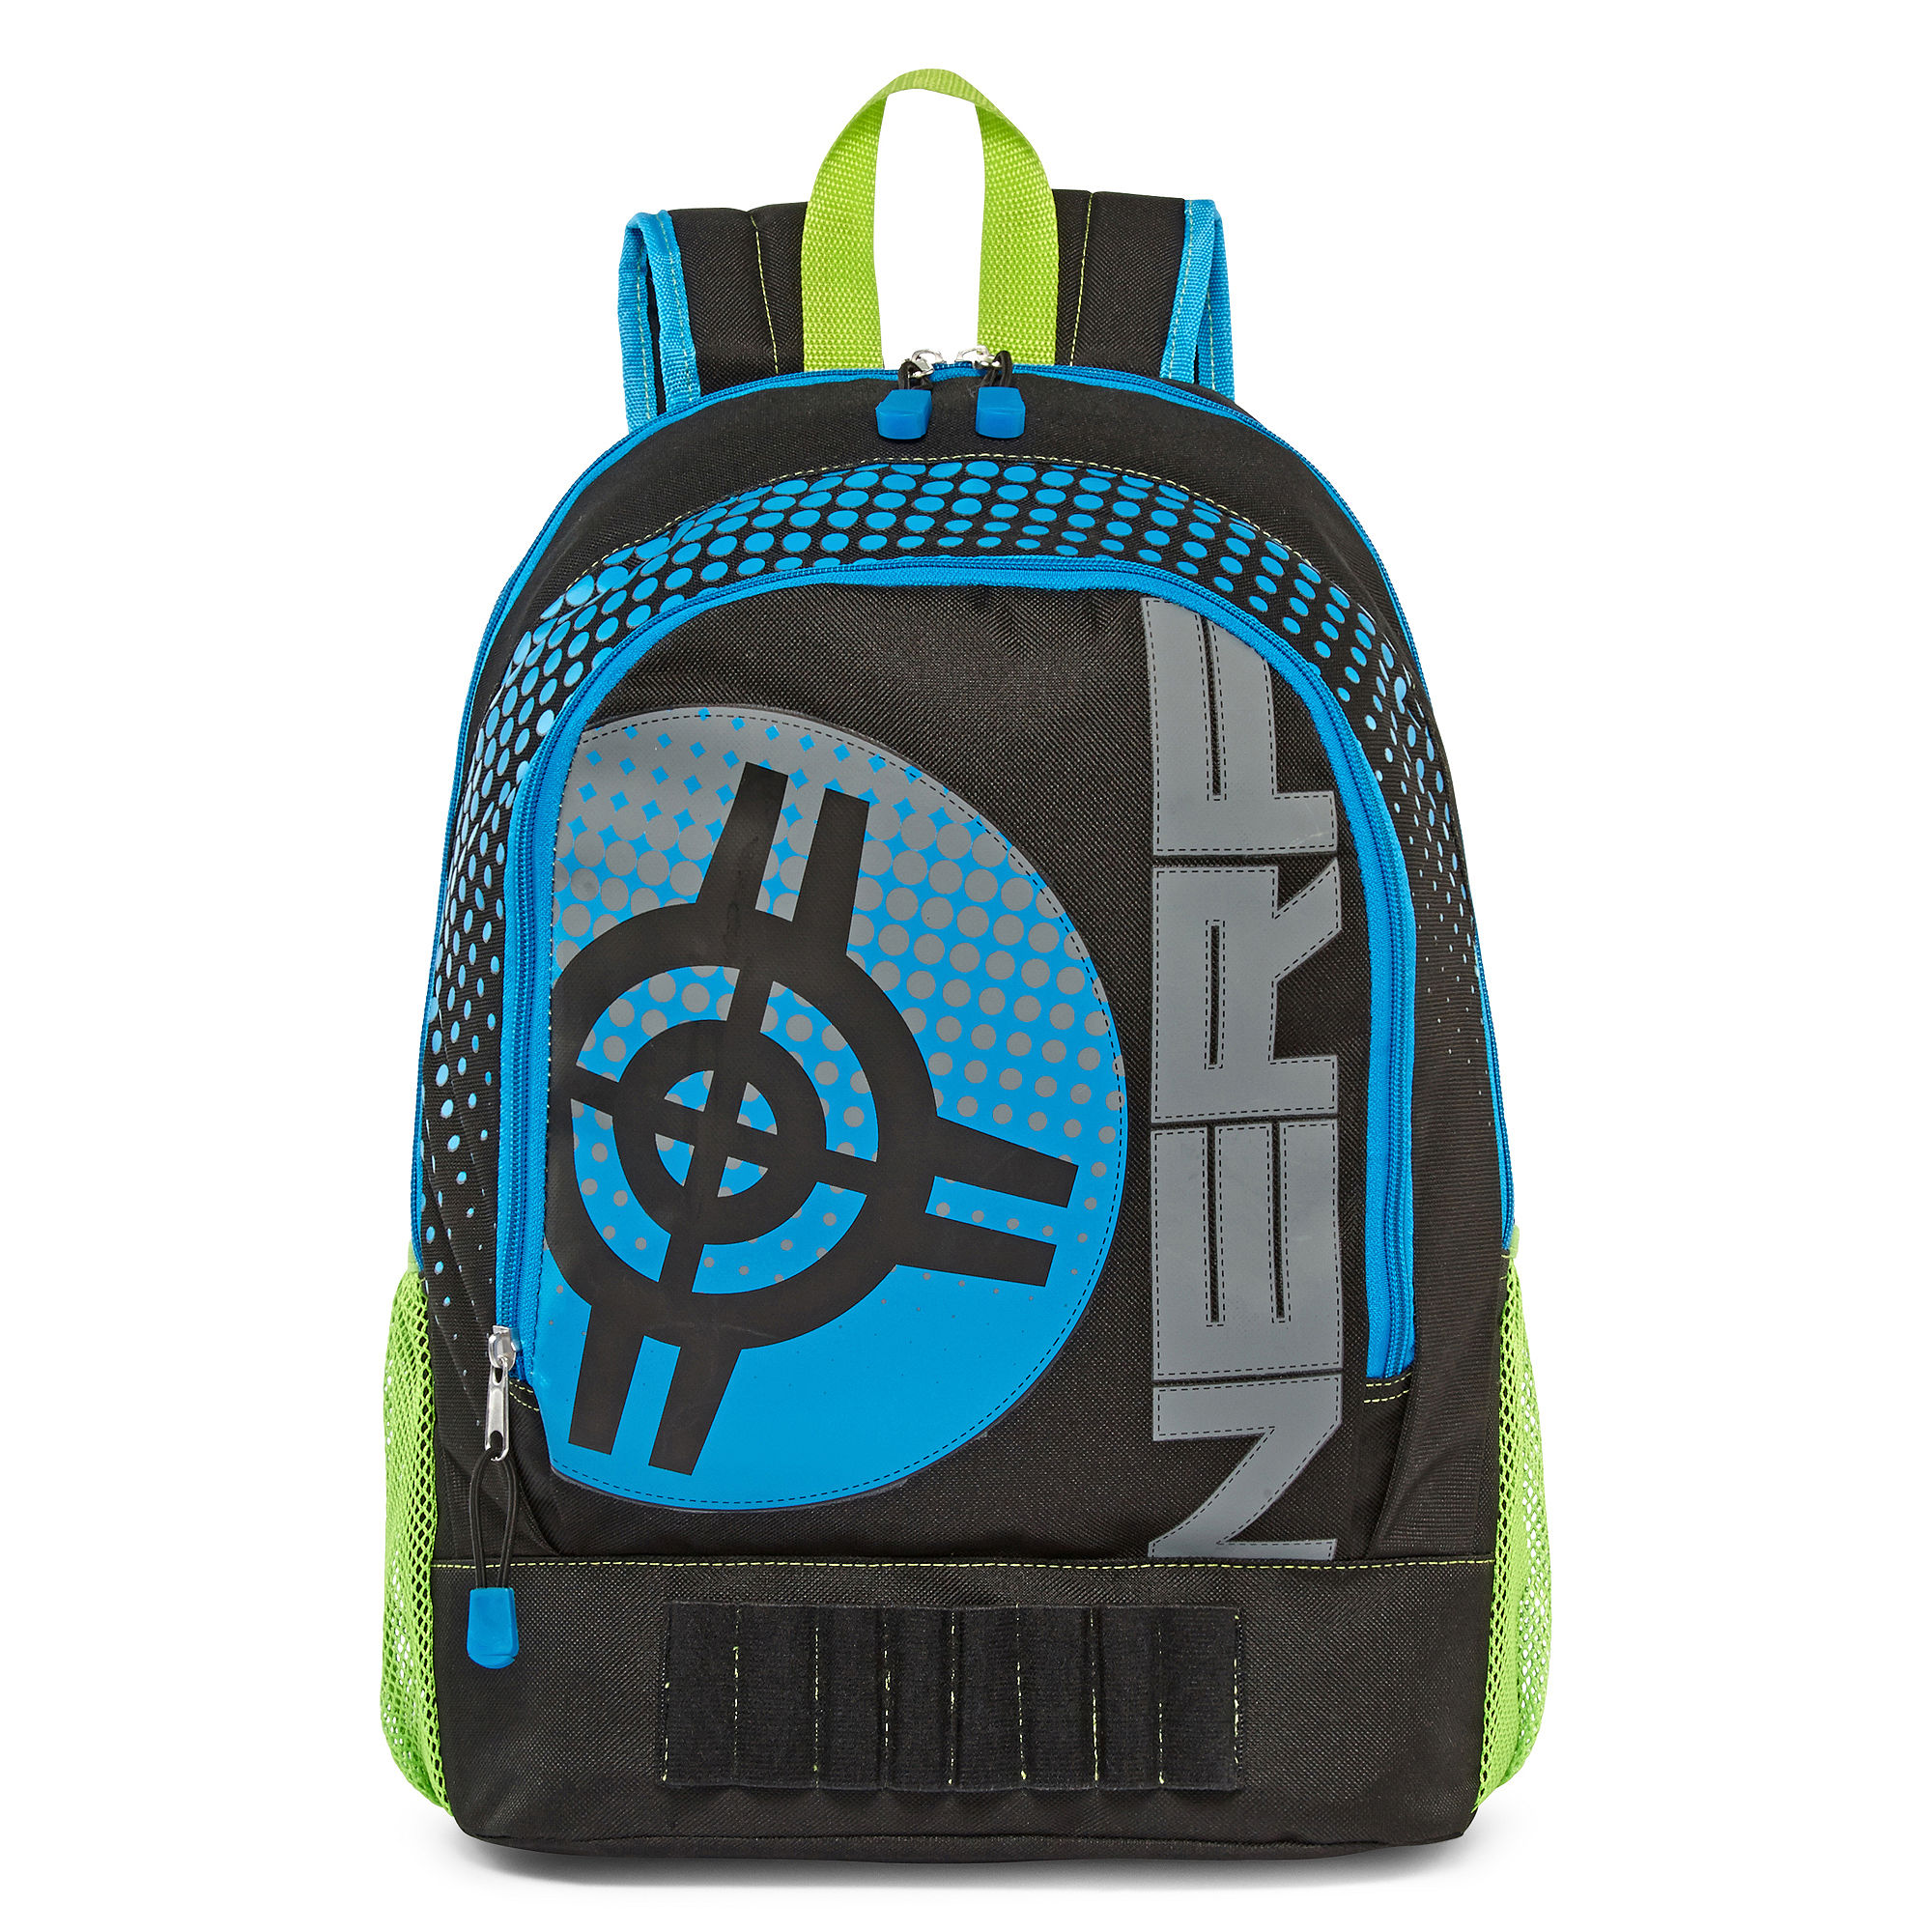 The Best Deals on Backpacks for #Backtoschool